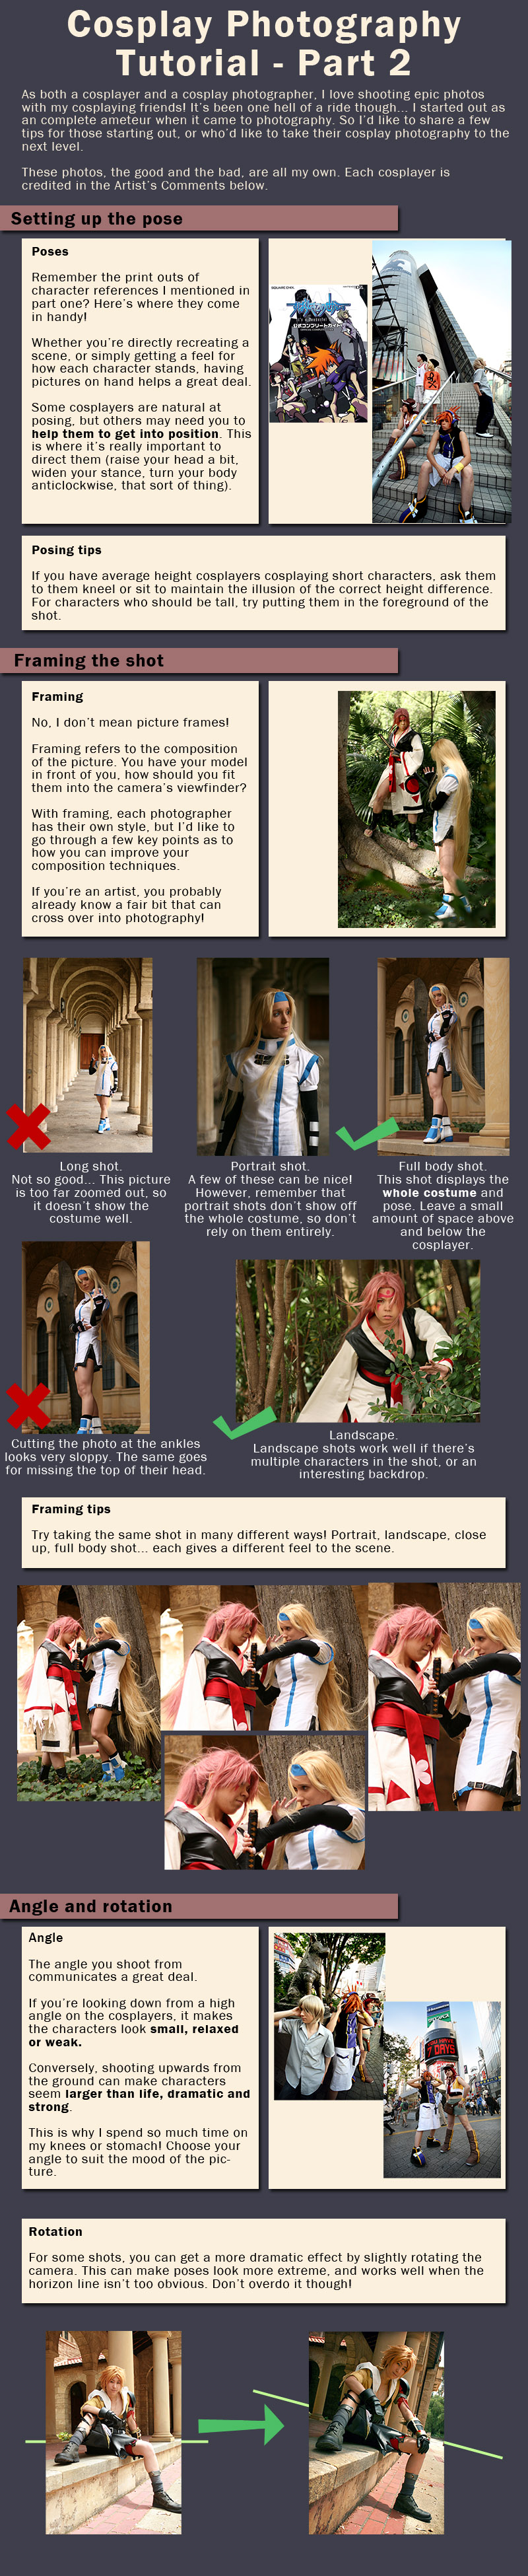 Cosplay Photography Tutorial 2